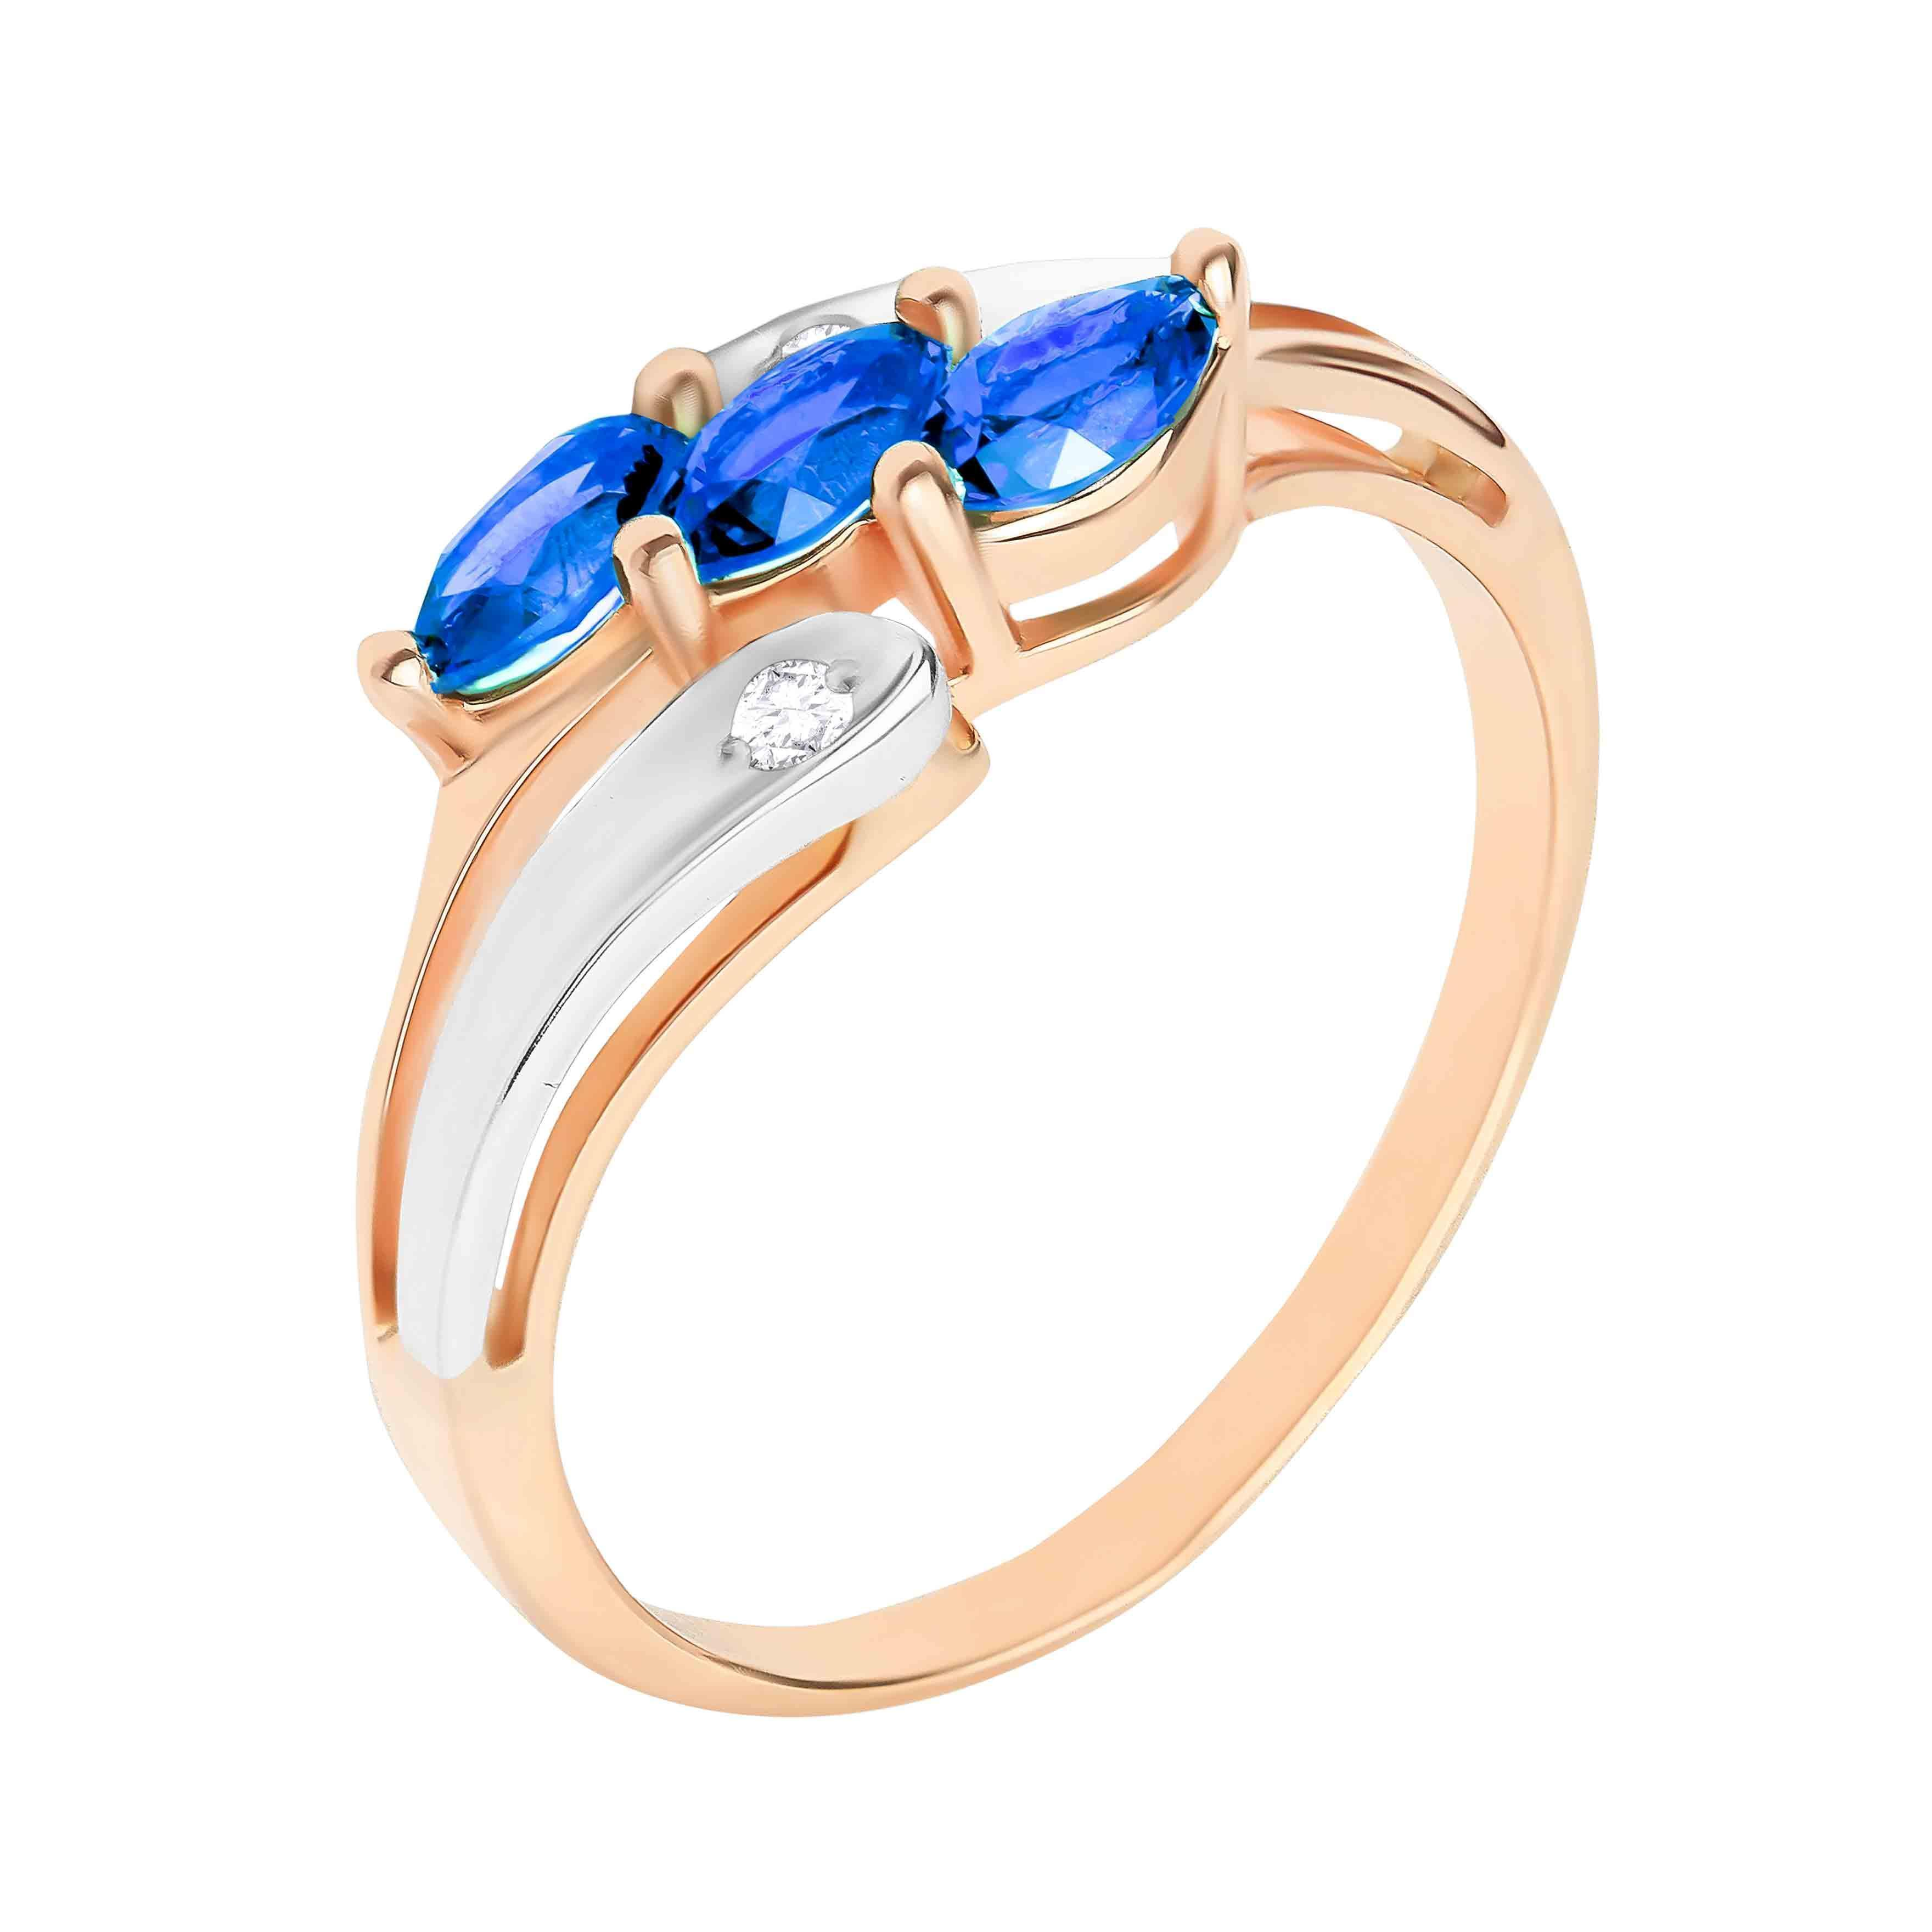 Marquise-shaped Sapphire and Diamond Ring